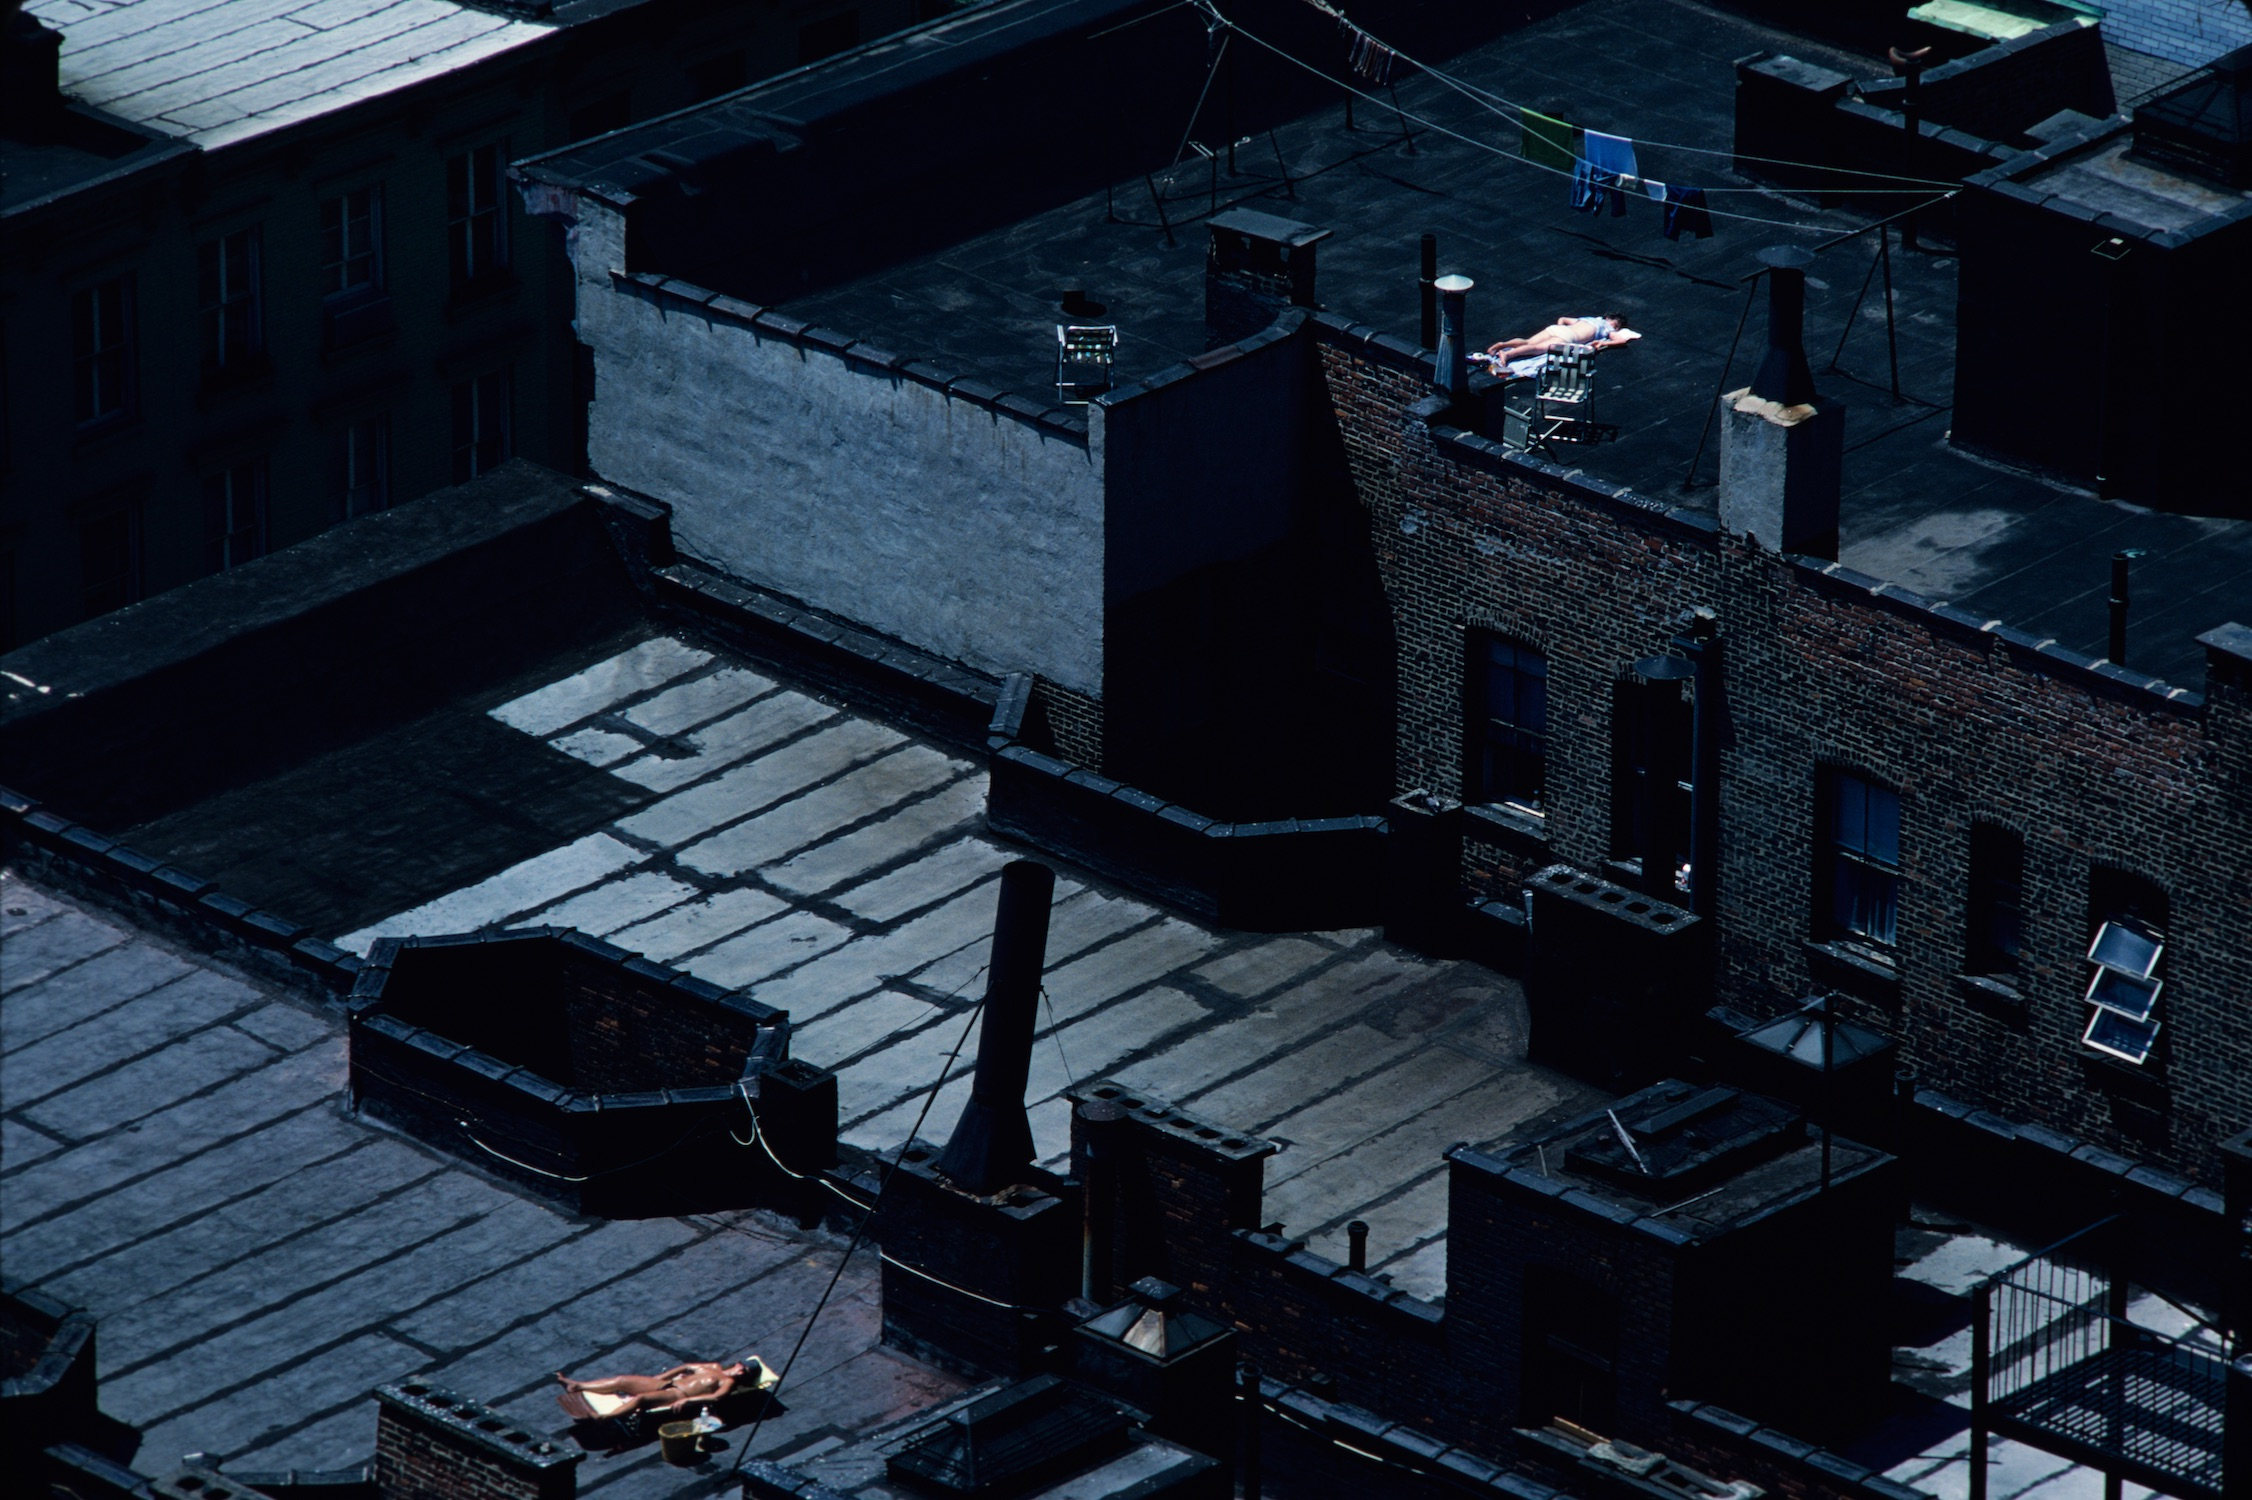 New York City Roof Top, 1984